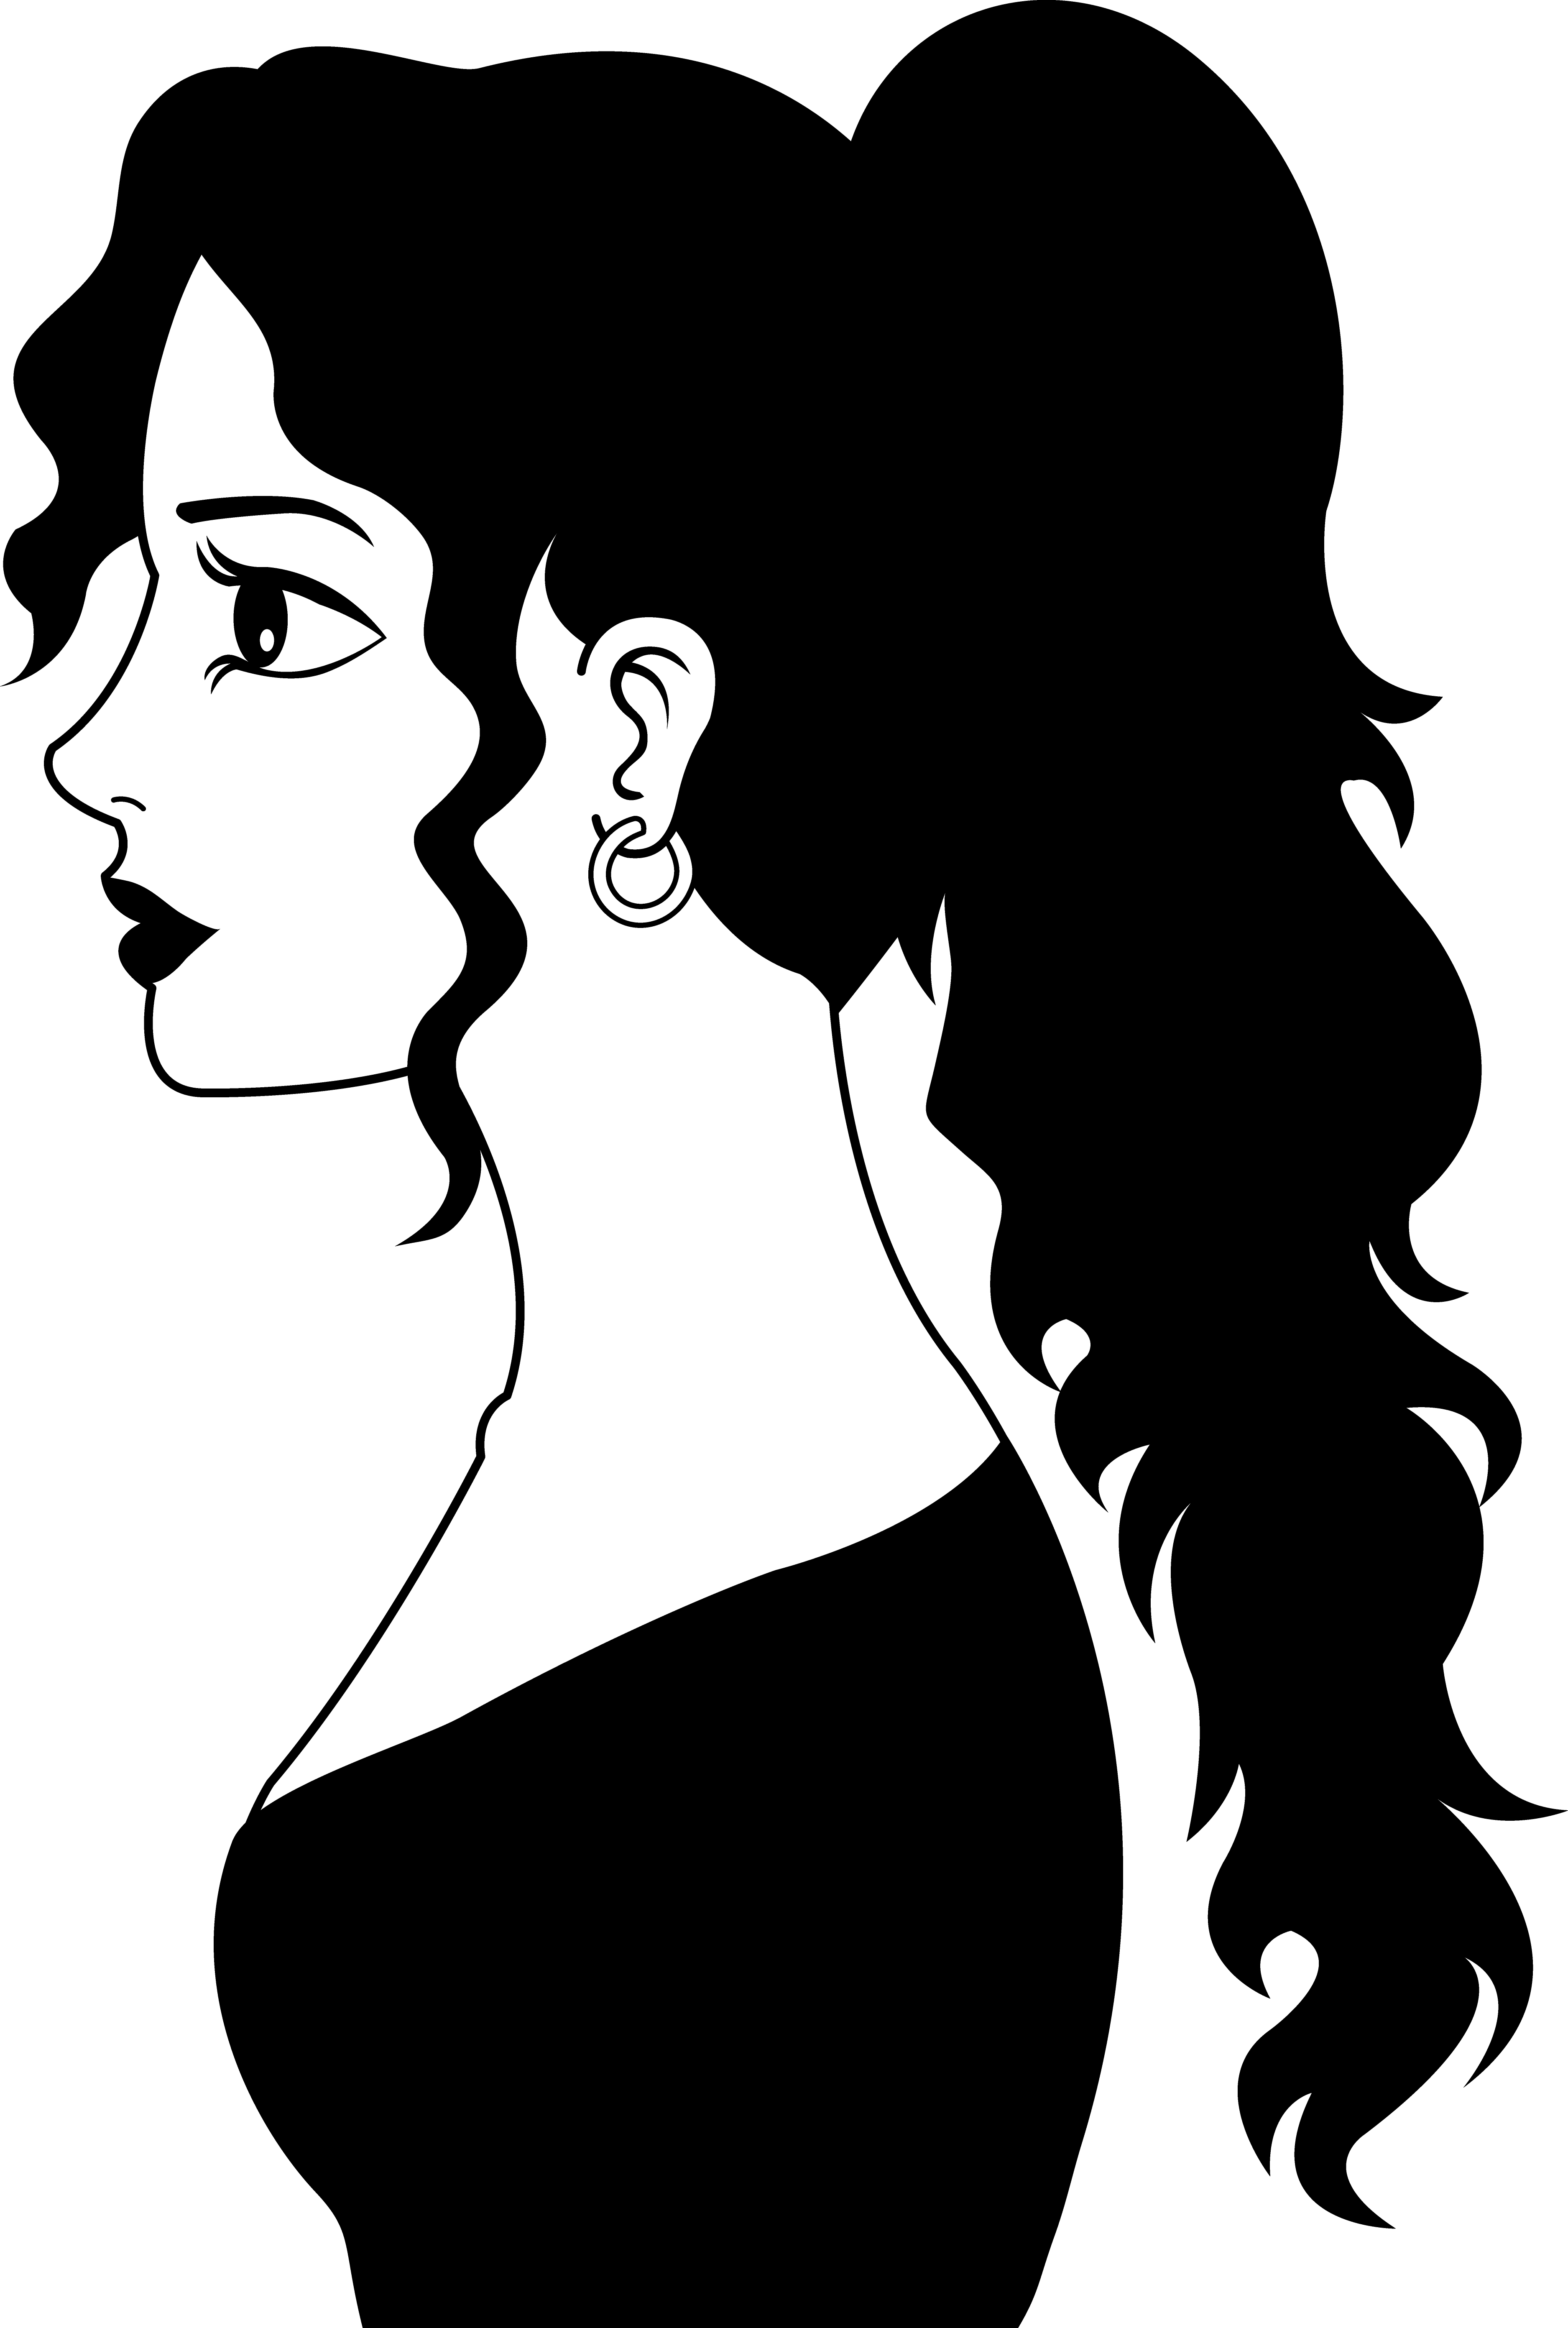 3750x5567 Profile Of A Woman In Black And White